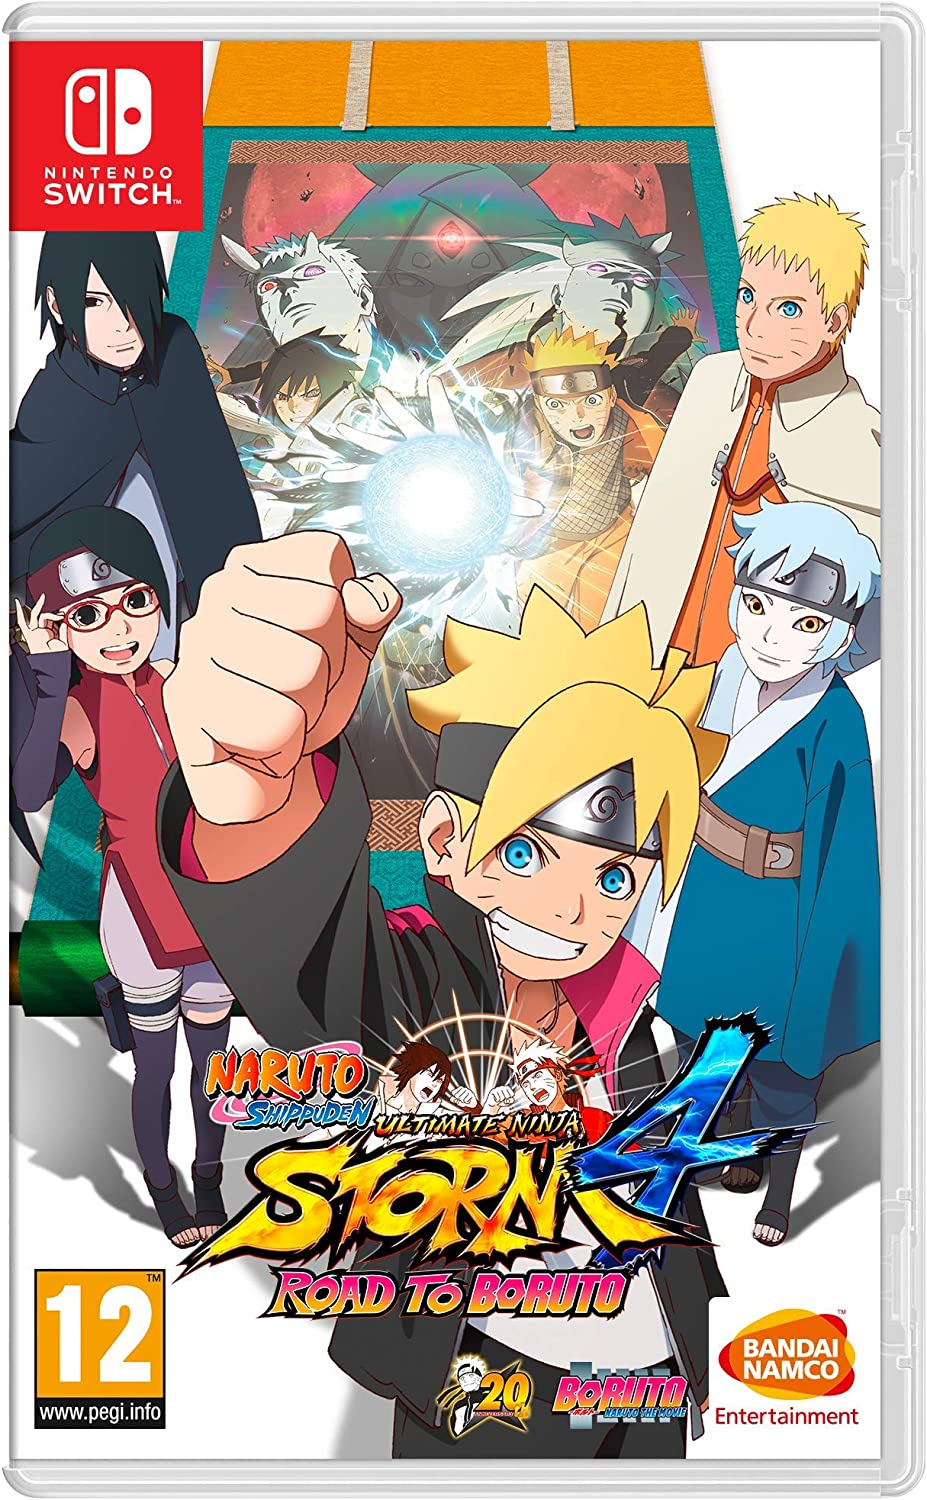 Naruto Shippuden: Ultimate Ninja Storm 4 Road To Boruto: Amazon.es ...